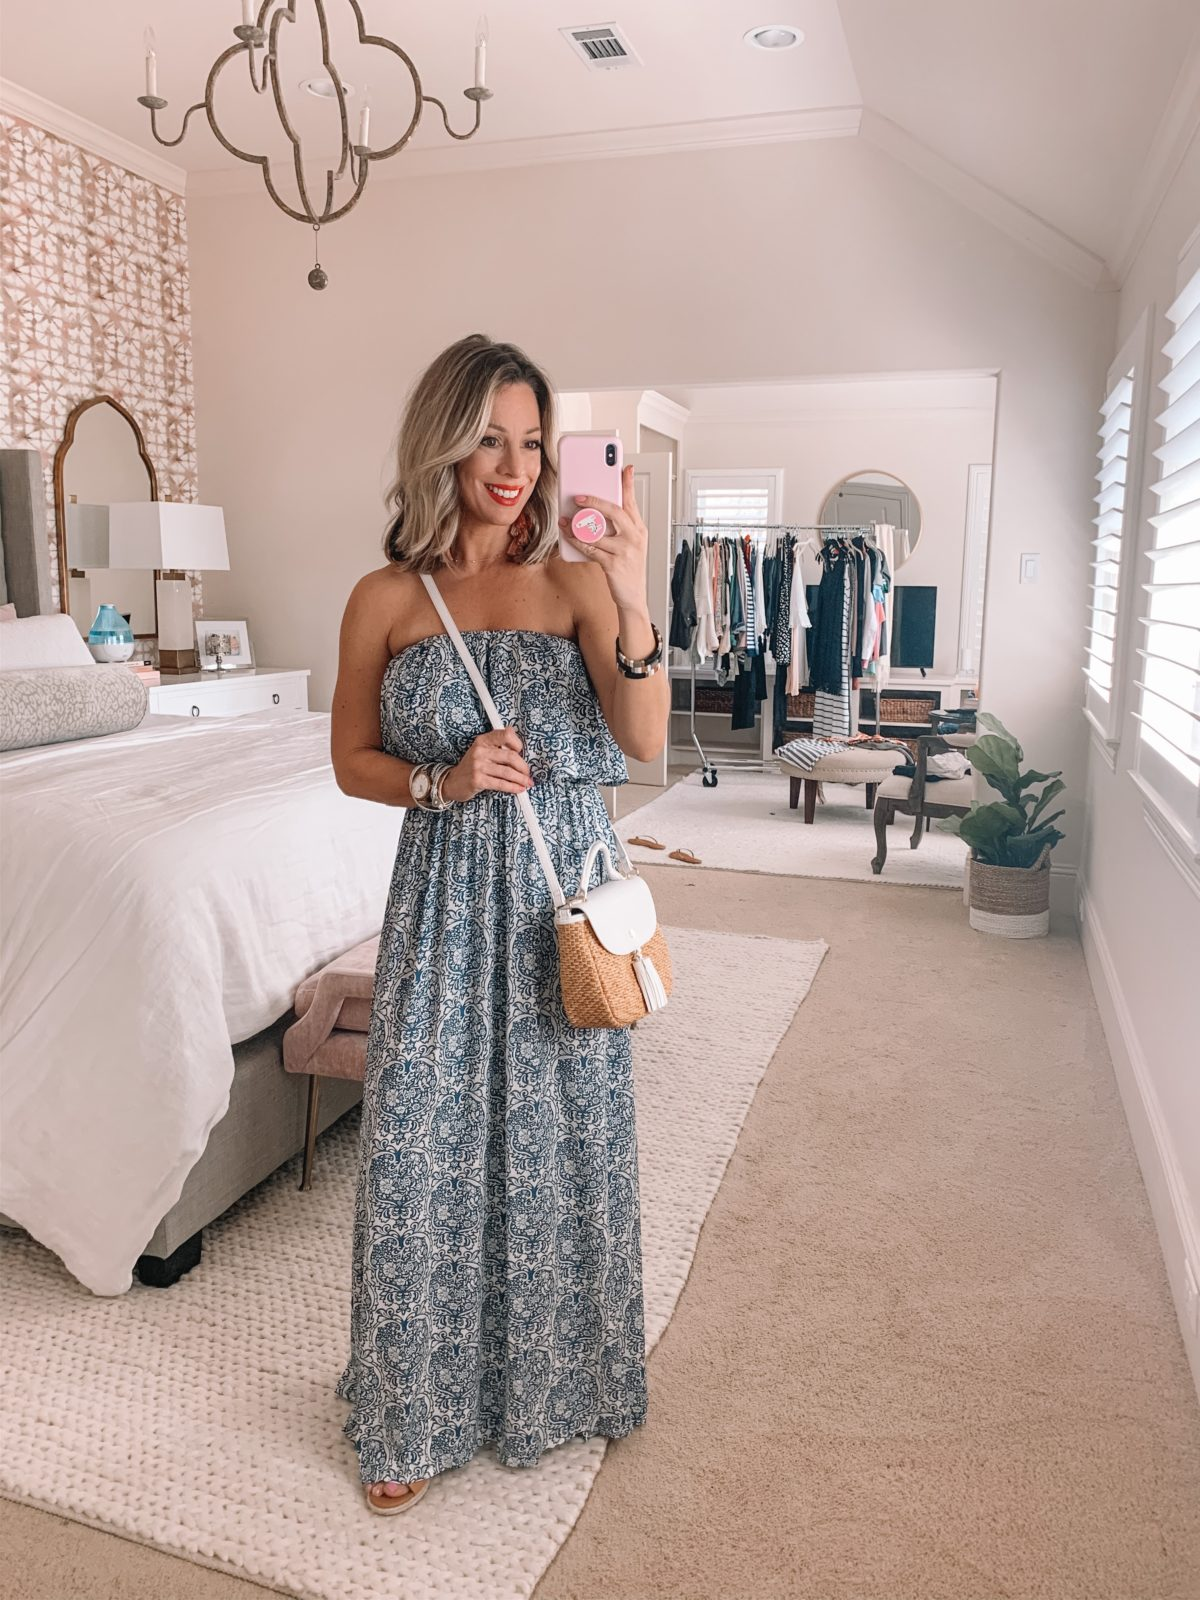 Off Shoulder Blue and White maxi Dress, Woven Crossbody